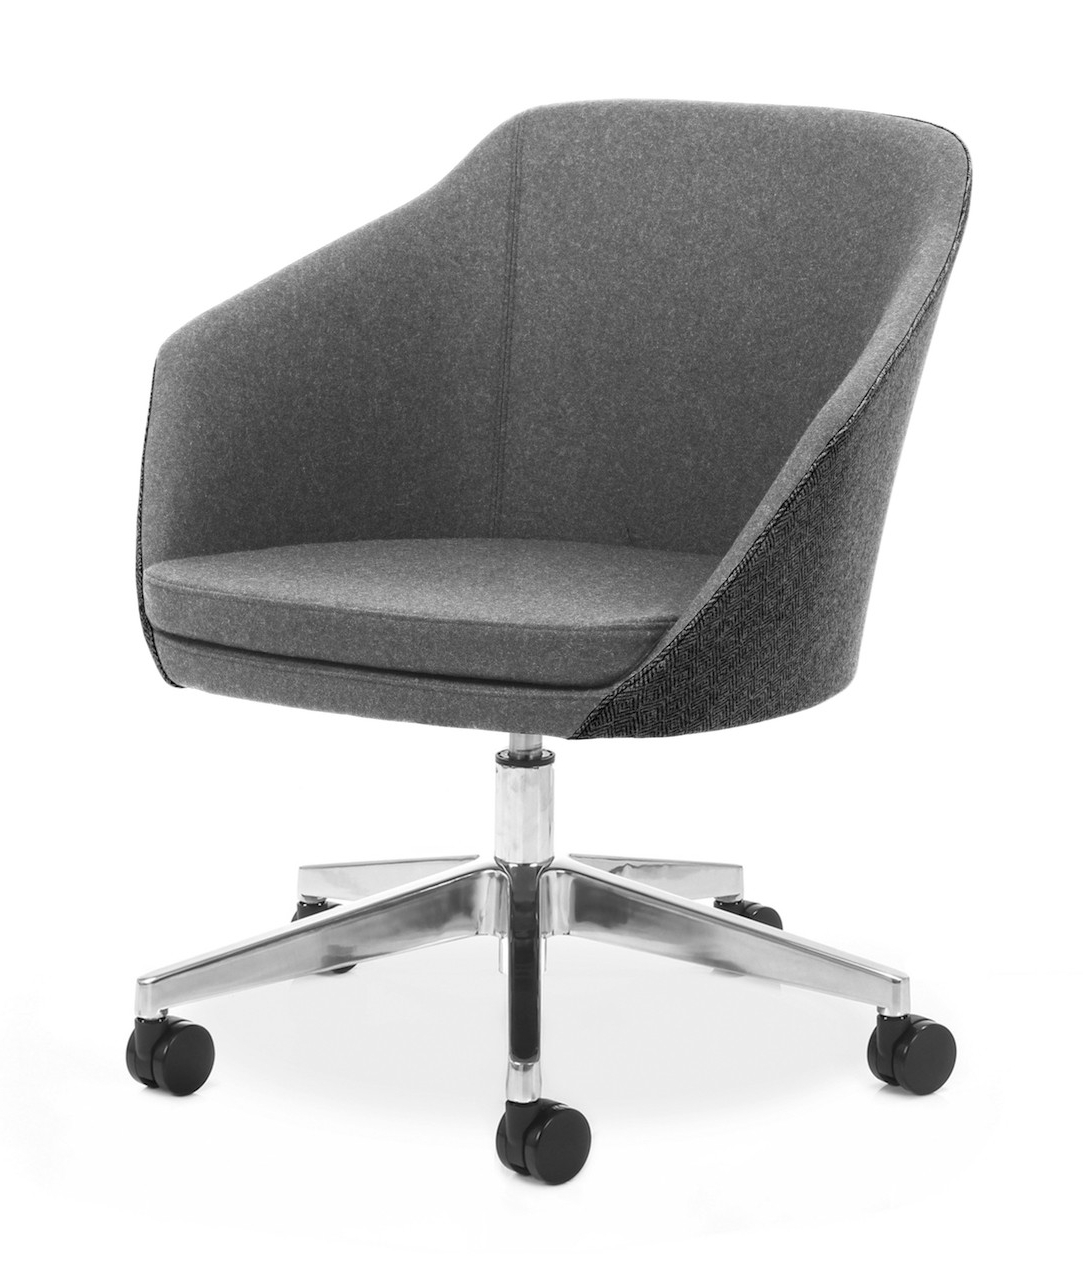 Best And Newest Chill Swivel Chairs With Metal Base For Annette: 5 Point Castor Base Office Furniture, Desk Chairs, Task (Gallery 9 of 20)